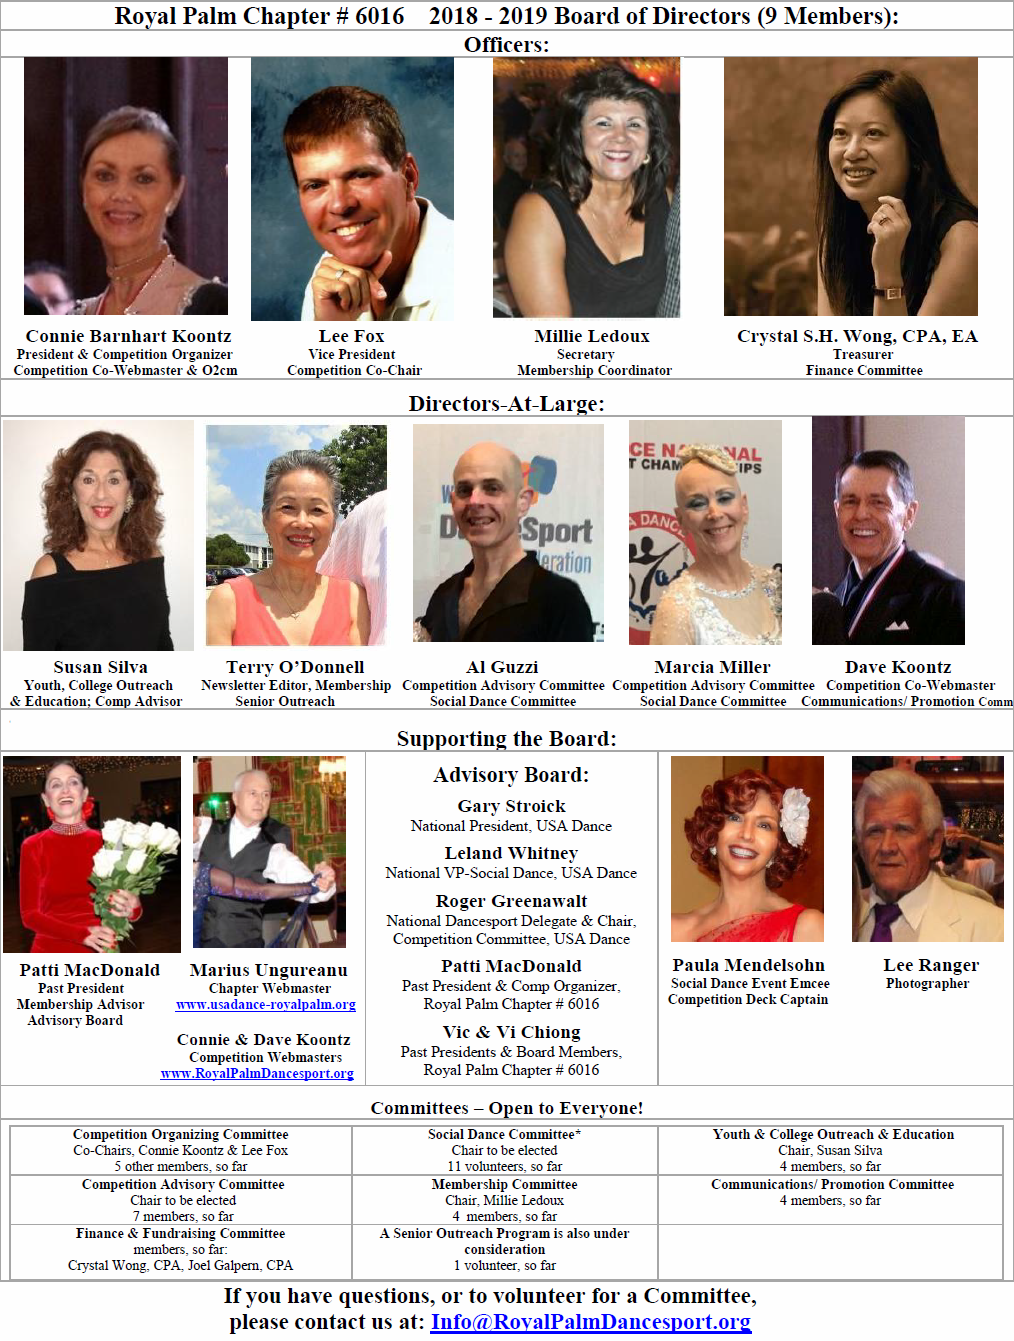 2018-2019 Board of Directors - USA Dance, Royal Palm Chapter # 6016